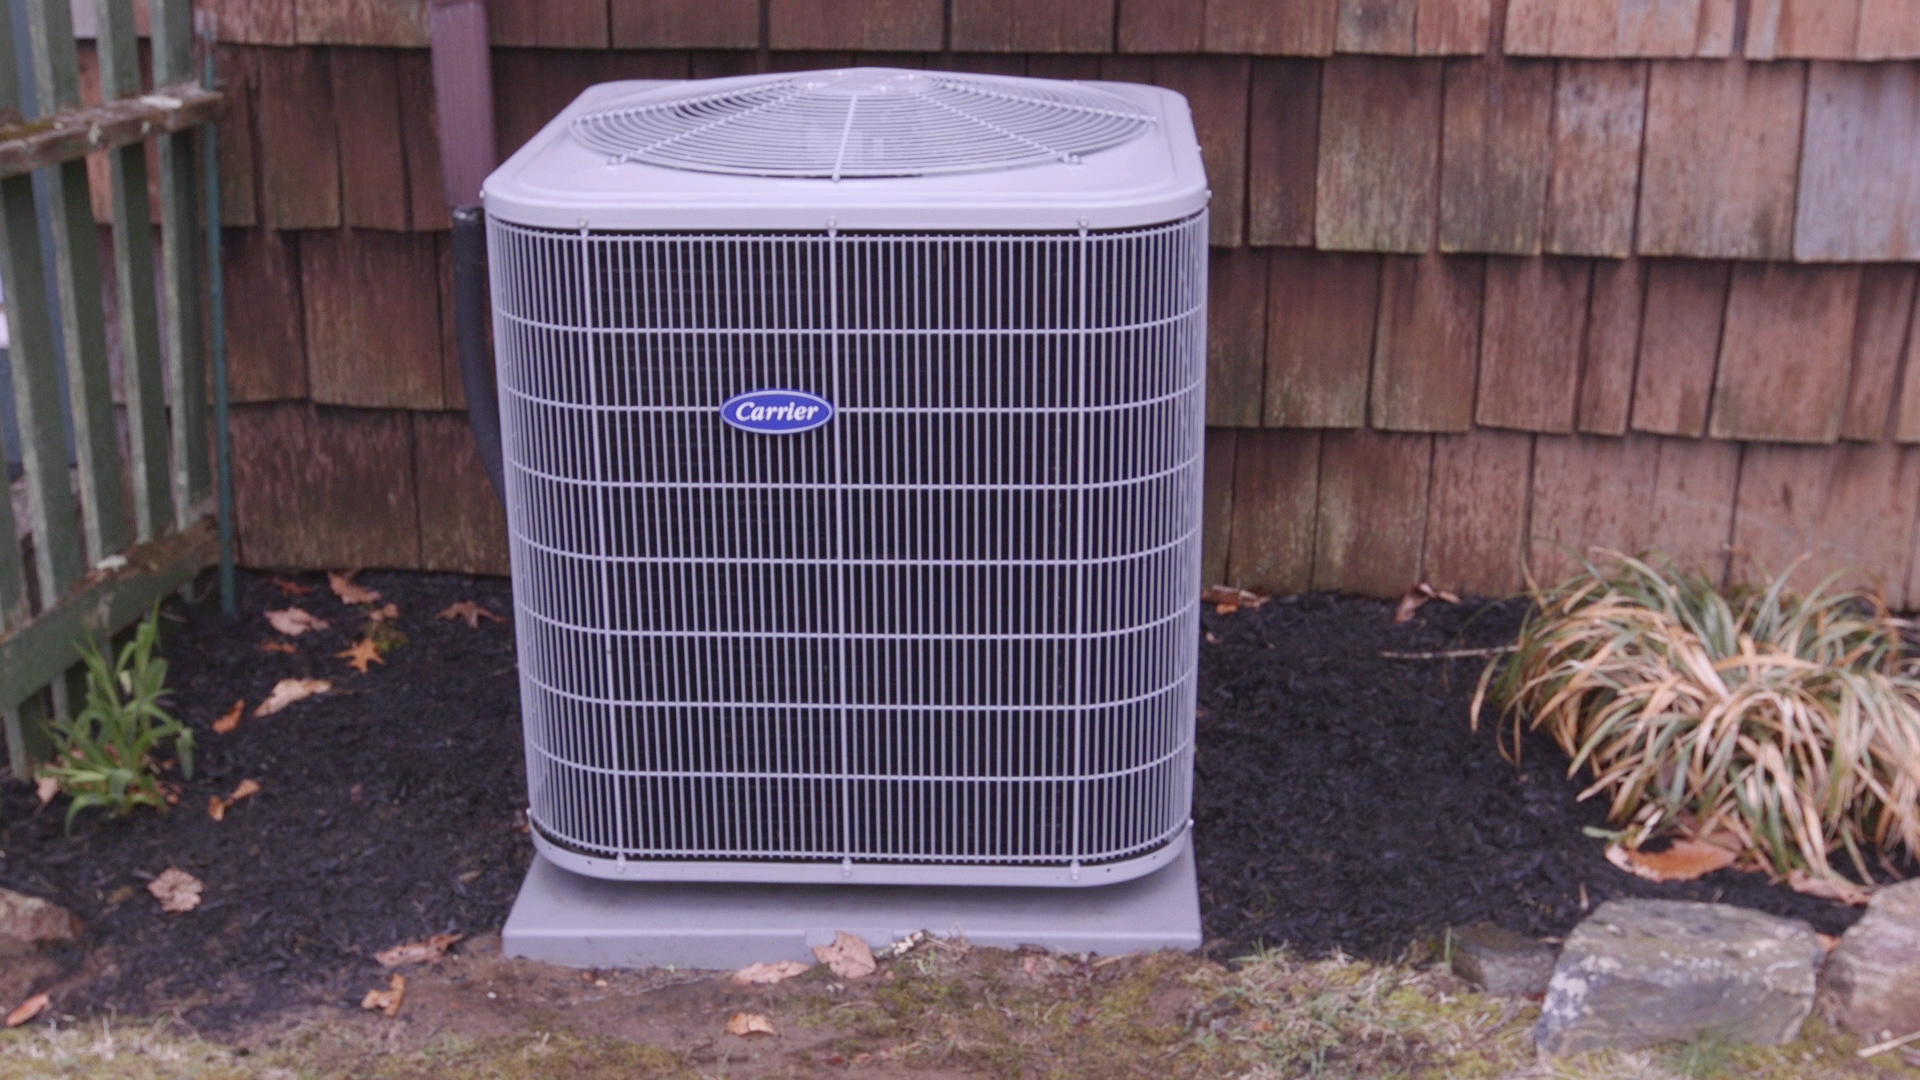 Central Air Conditioner Ratings And Reviews >> Best Central Air Conditioning Buying Guide Consumer Reports